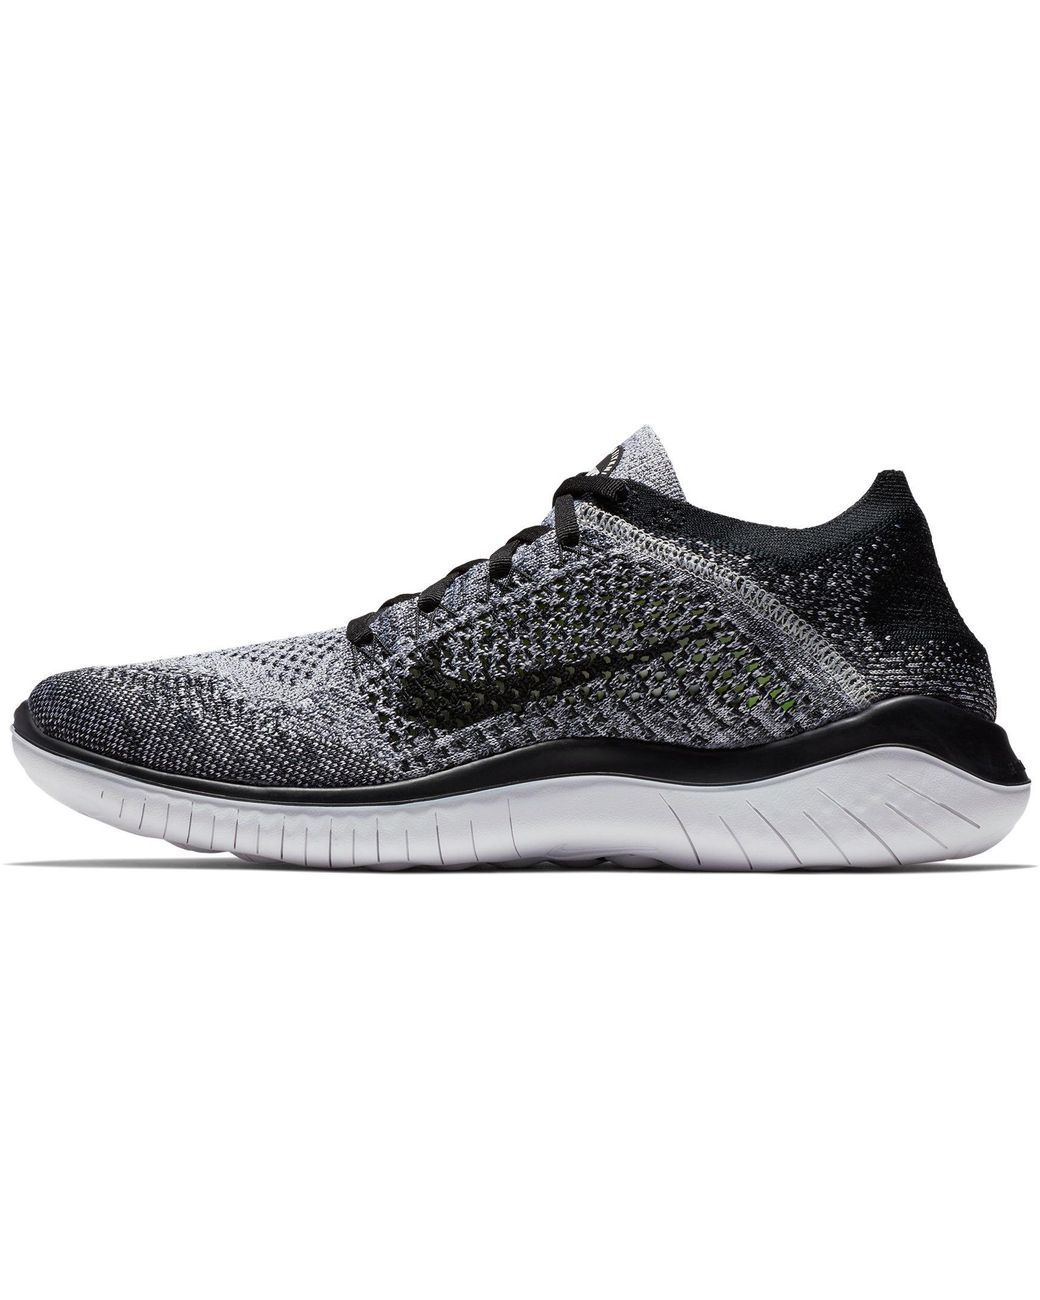 a7a791f1ad6d Lyst - Nike Free Rn Flyknit 2018 Running Shoes in Black for Men